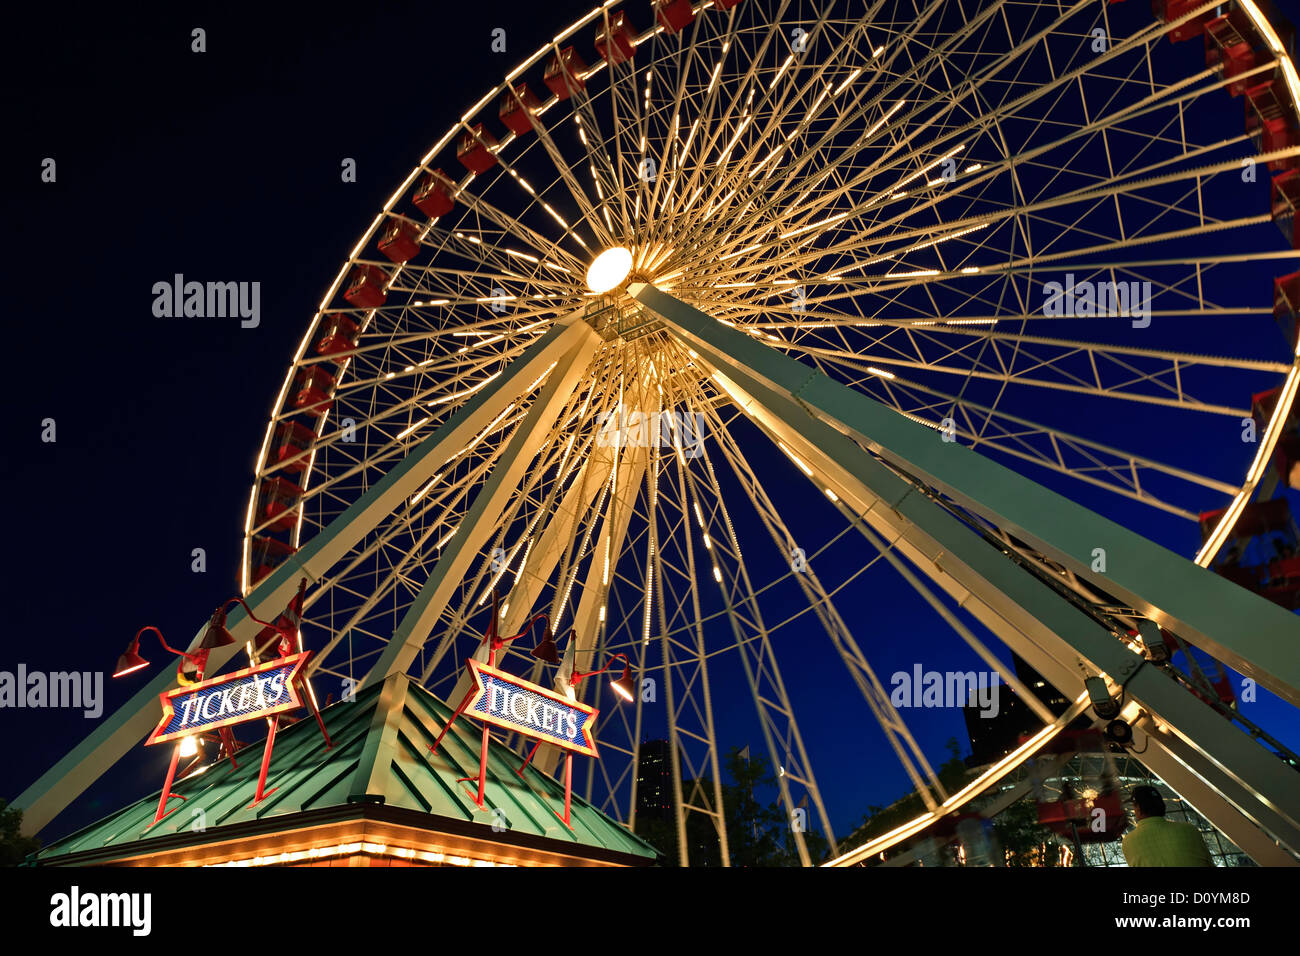 Ferris wheel, Navy Pier, Chicago, Illinois USA - Stock Image